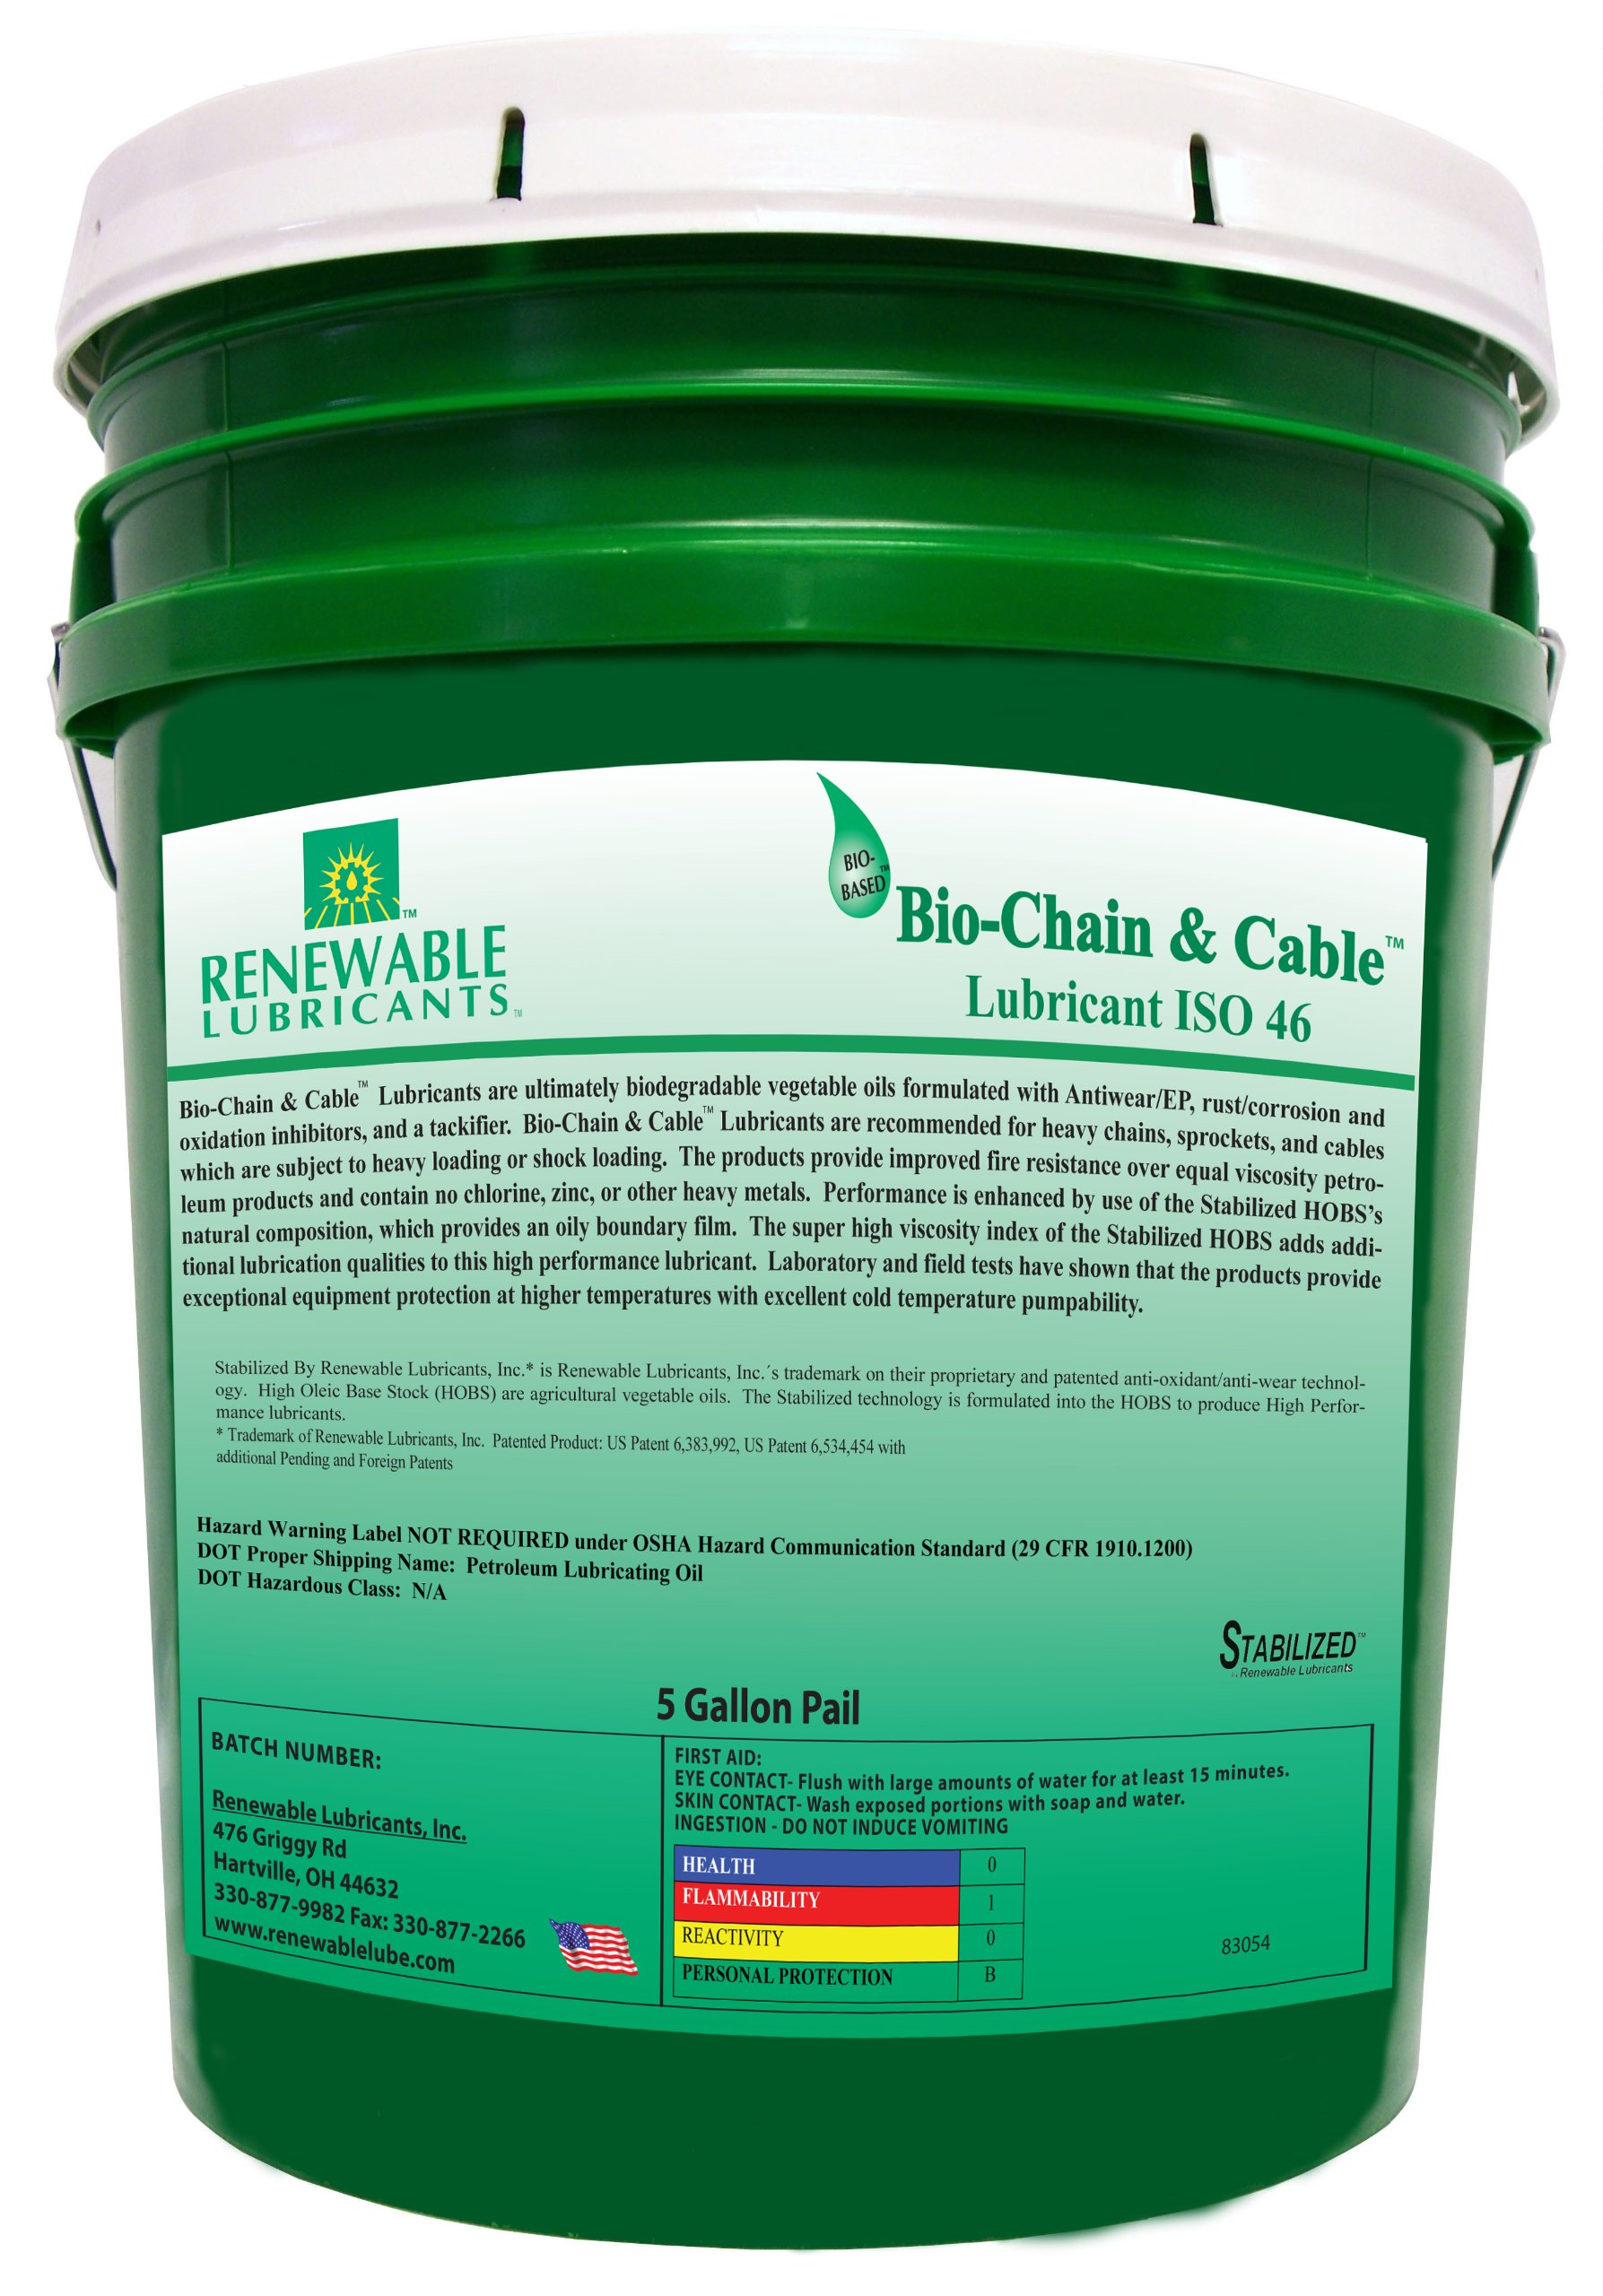 Renewable Lubricants Bio-Chain and Cable ISO 46 Lubricant Oil, 5 Gallon Pail by Renewable Lubricants